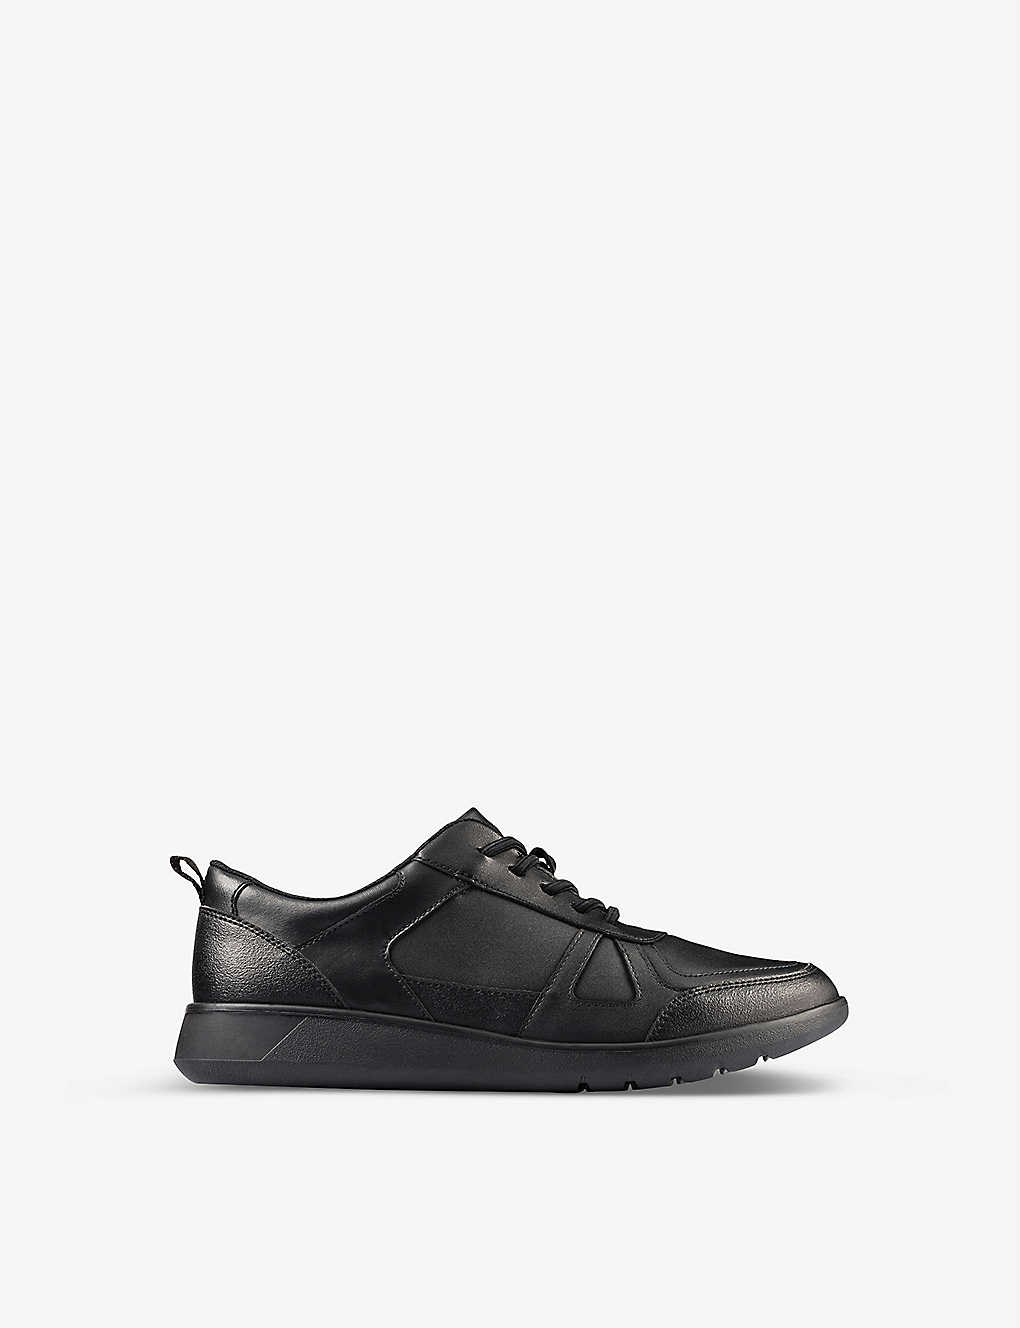 CLARKS: Scape Track Youth leather shoes 9-12 years